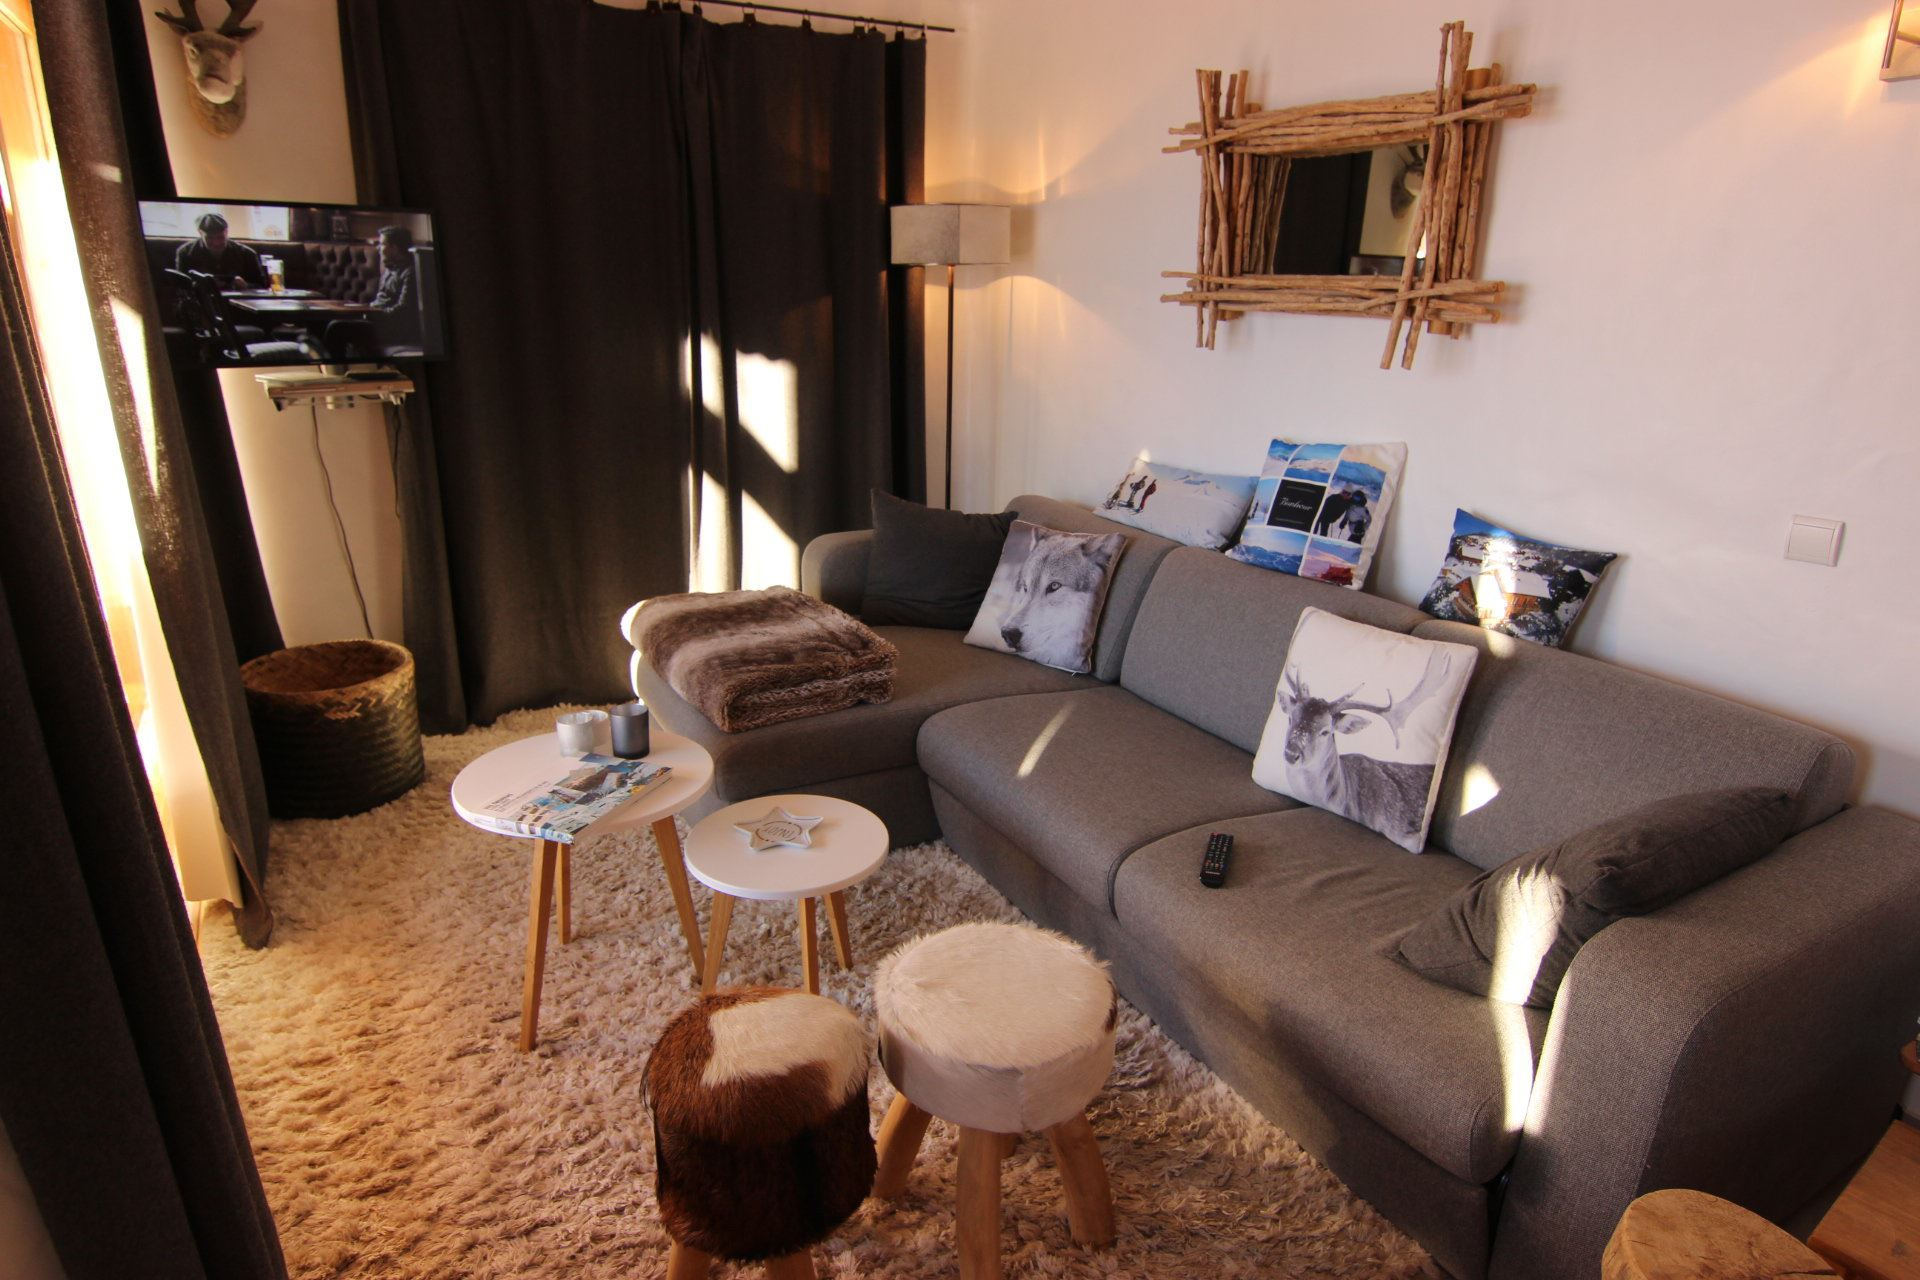 BOUQUETIN 1 / APARTMENT 4 ROOMS 8 PERSONS - VTI